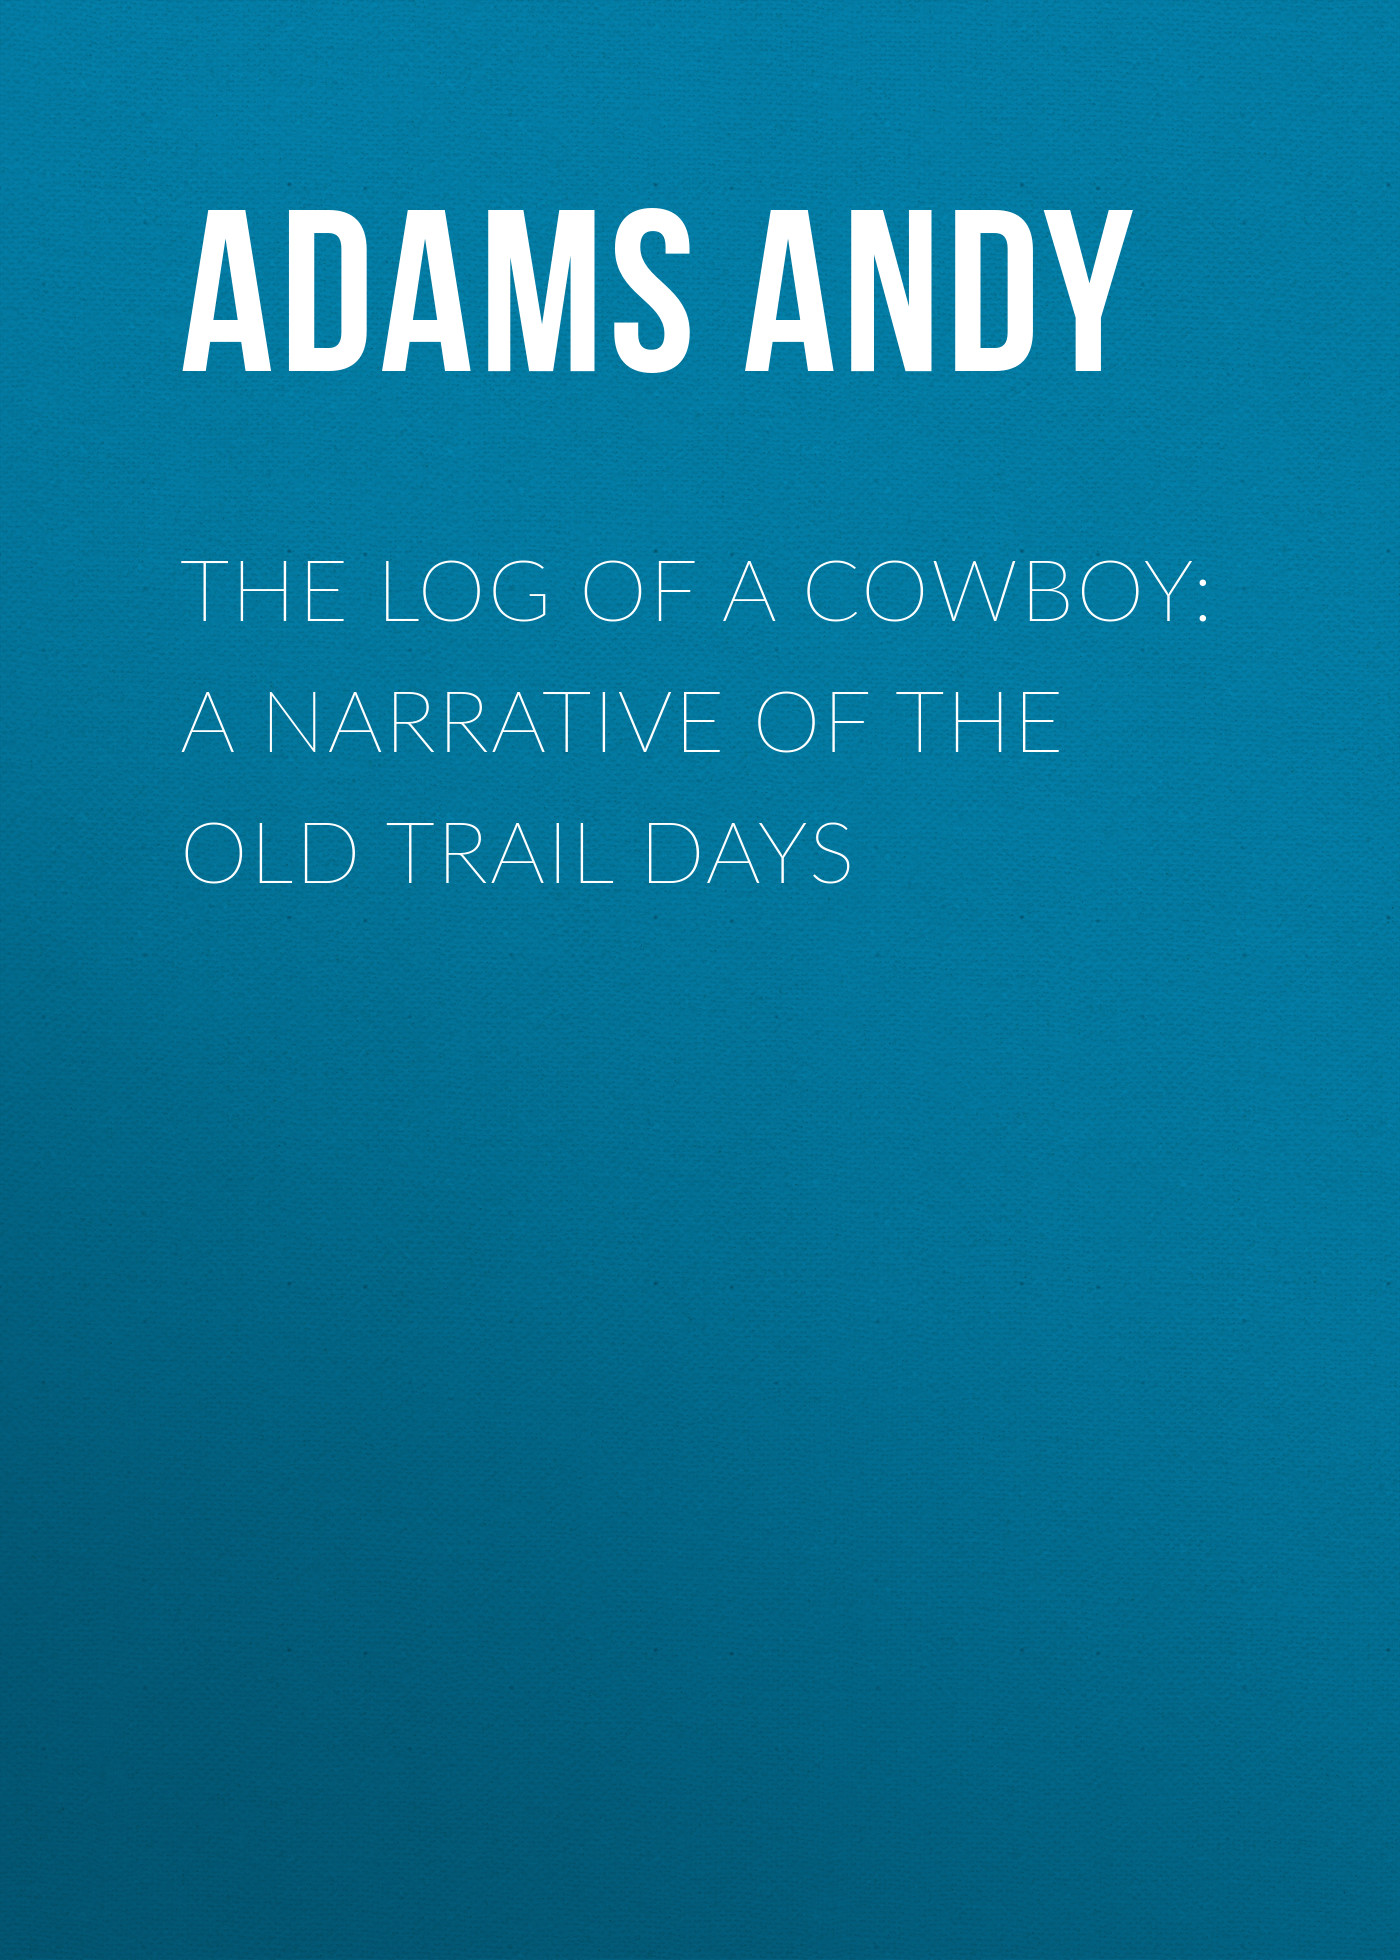 Adams Andy The Log of a Cowboy: A Narrative of the Old Trail Days trail of blood